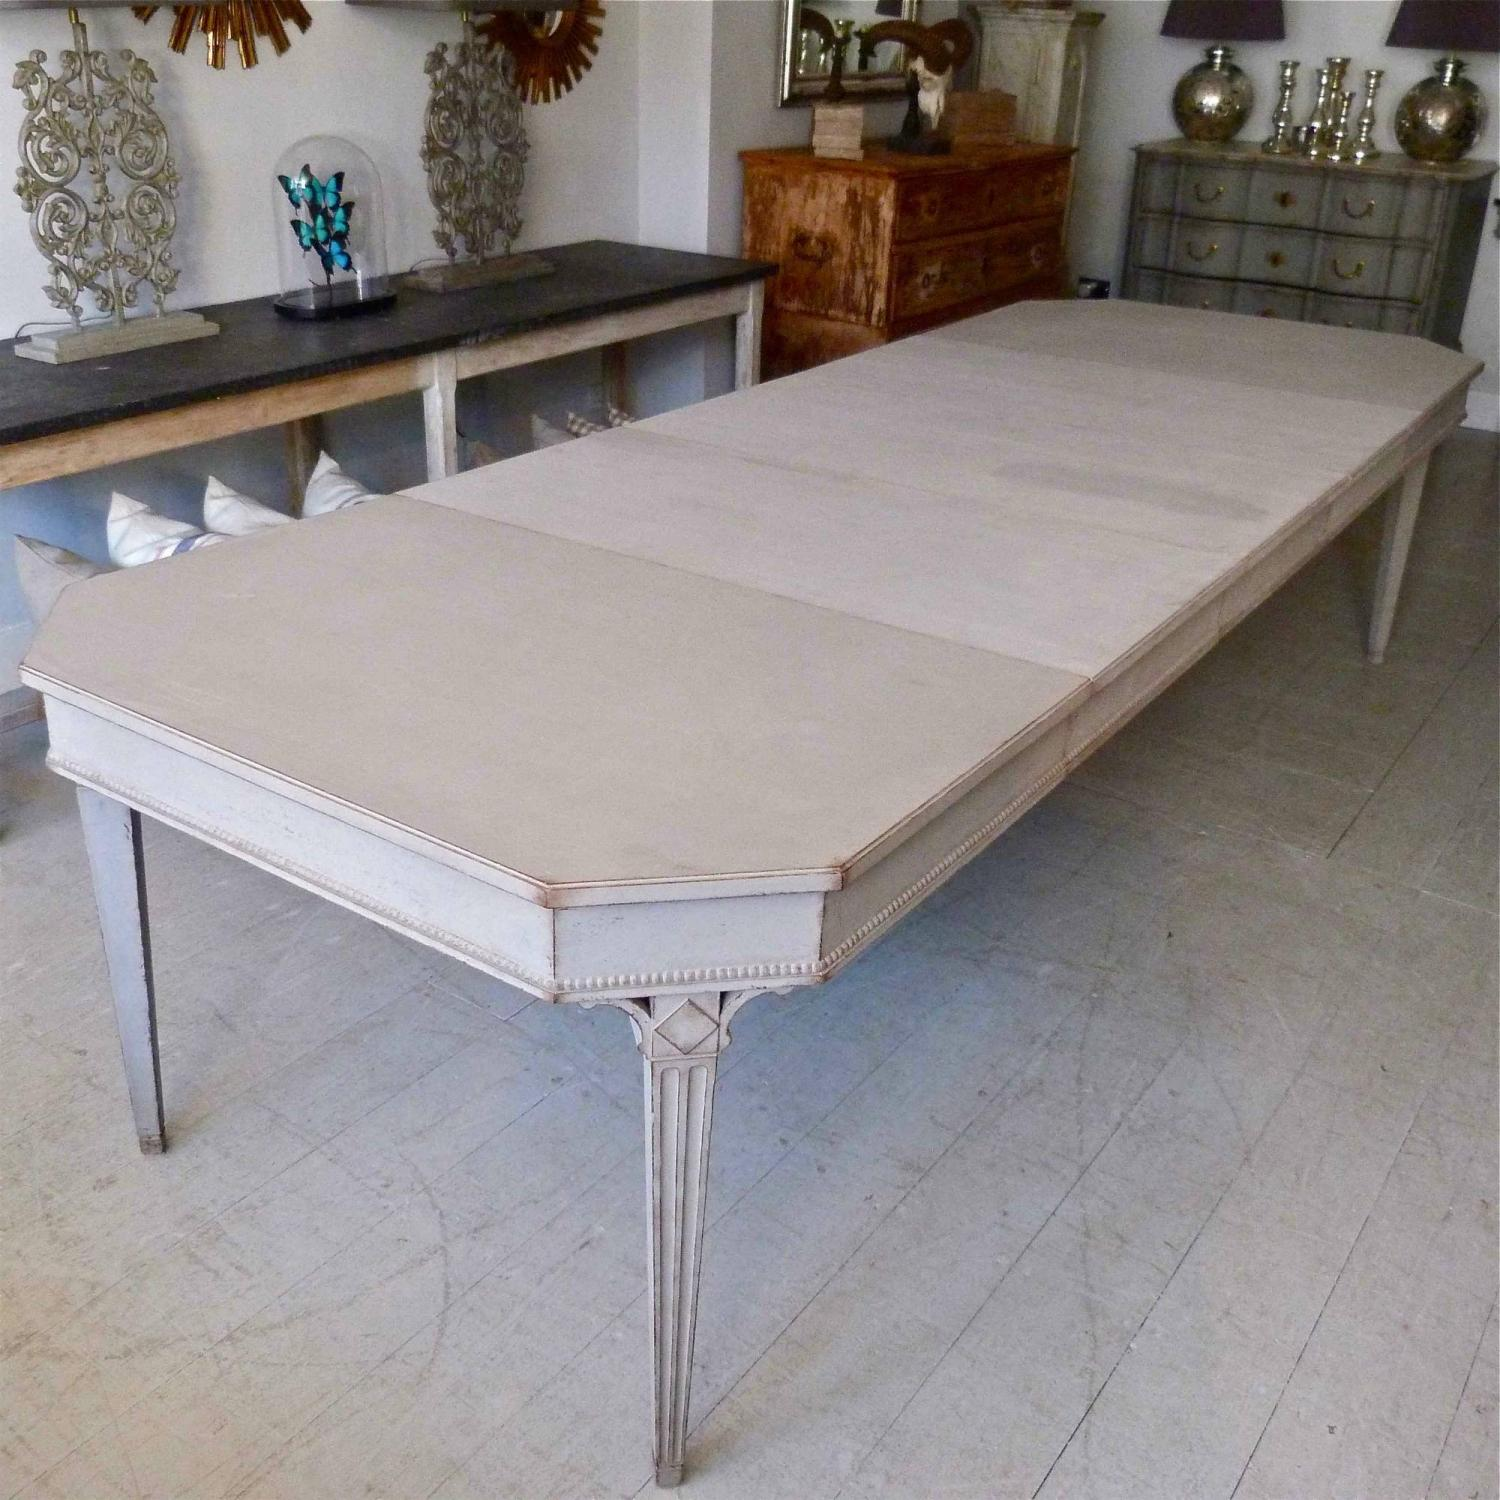 SWEDISH GUSTAVIAN STYLE EXTENSION DINING TABLE